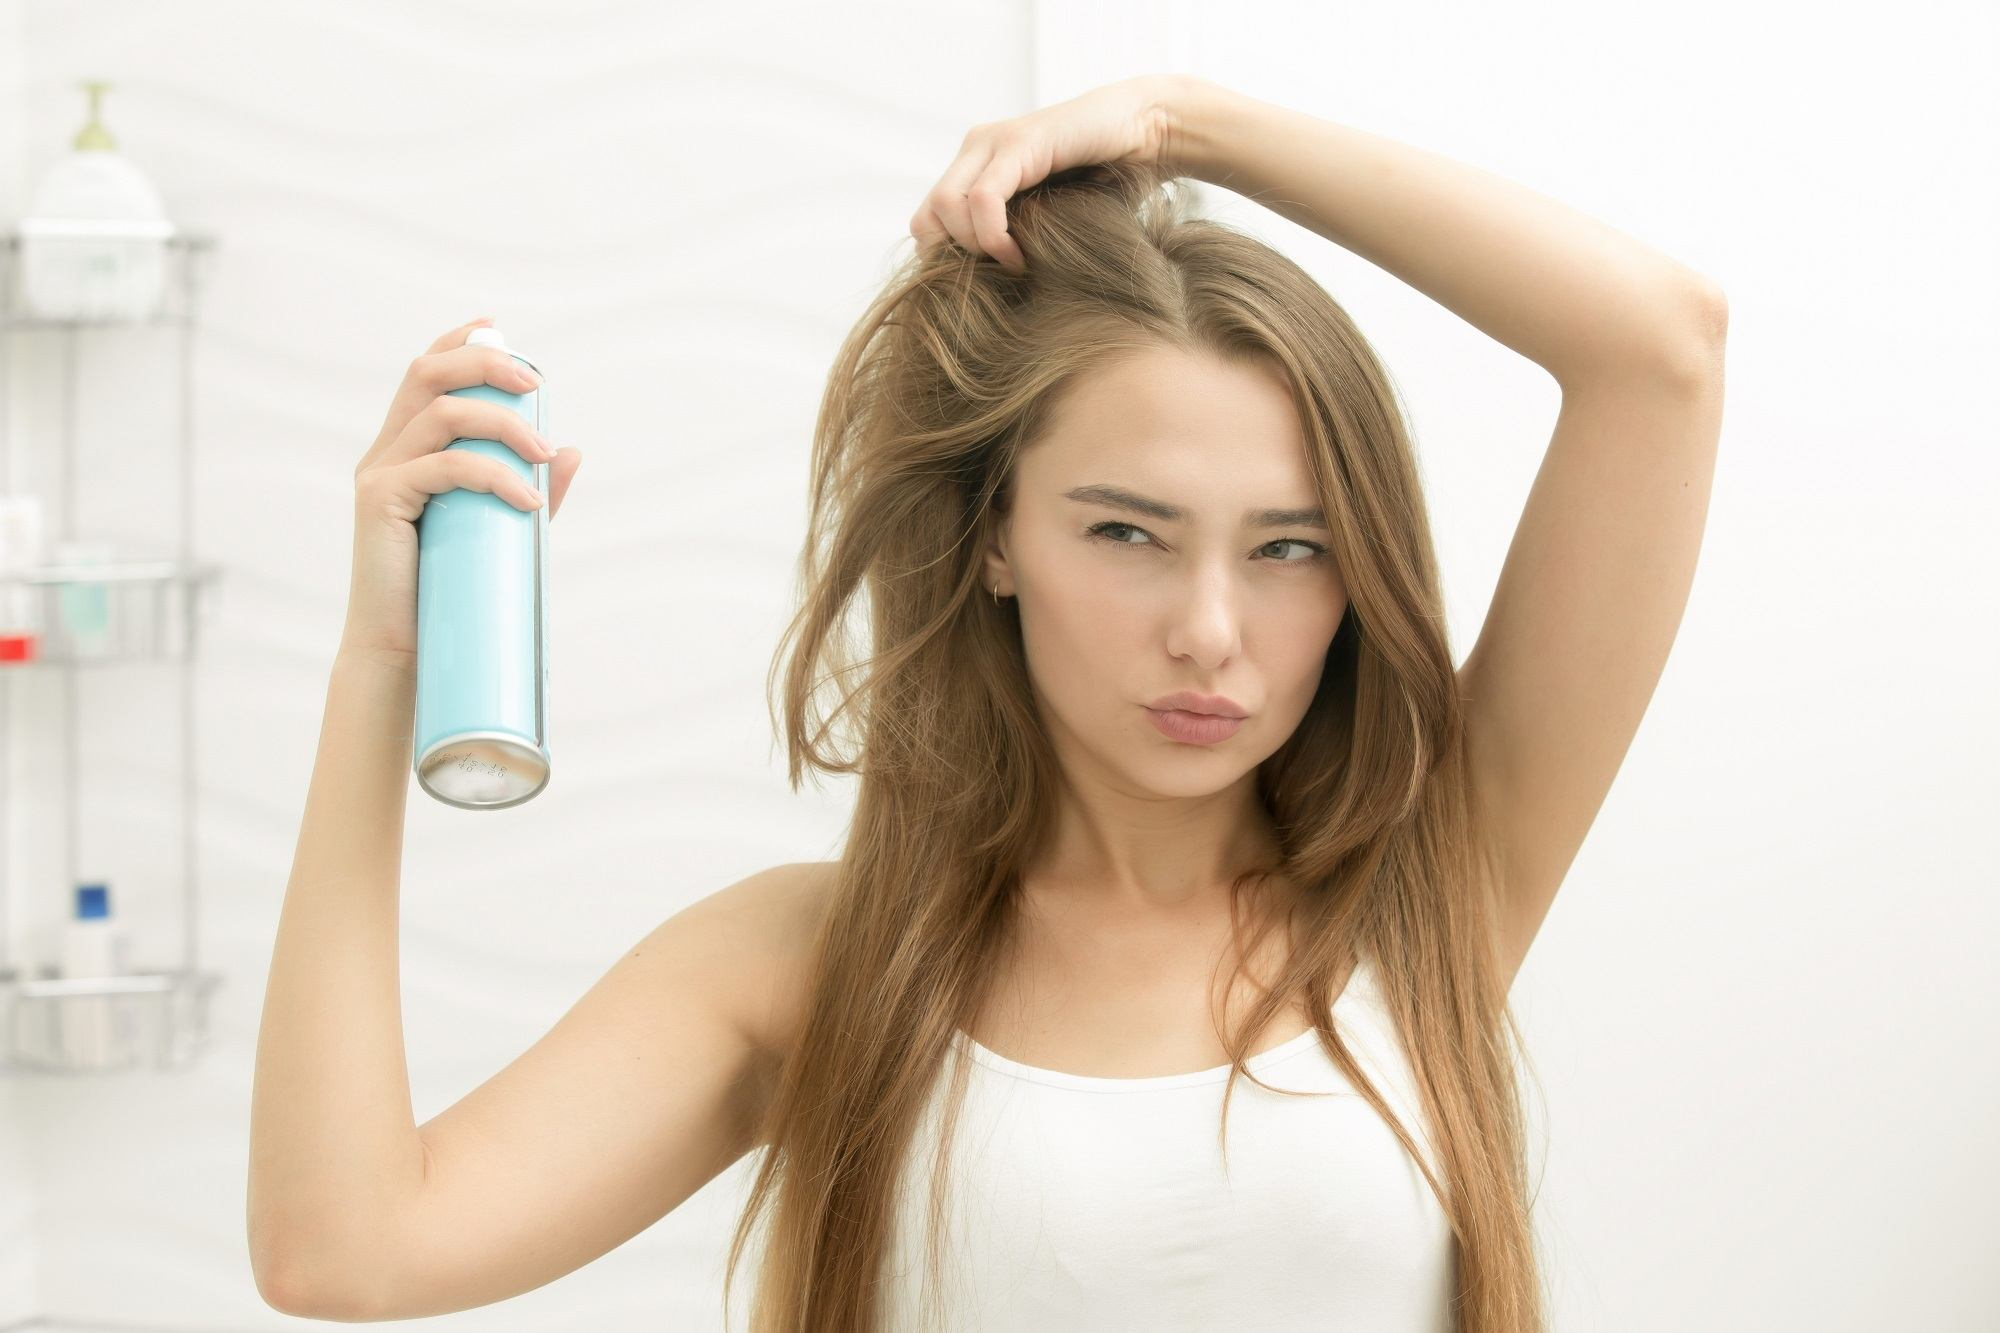 Night time hair care routine: Spray dry shampoo on your hair.